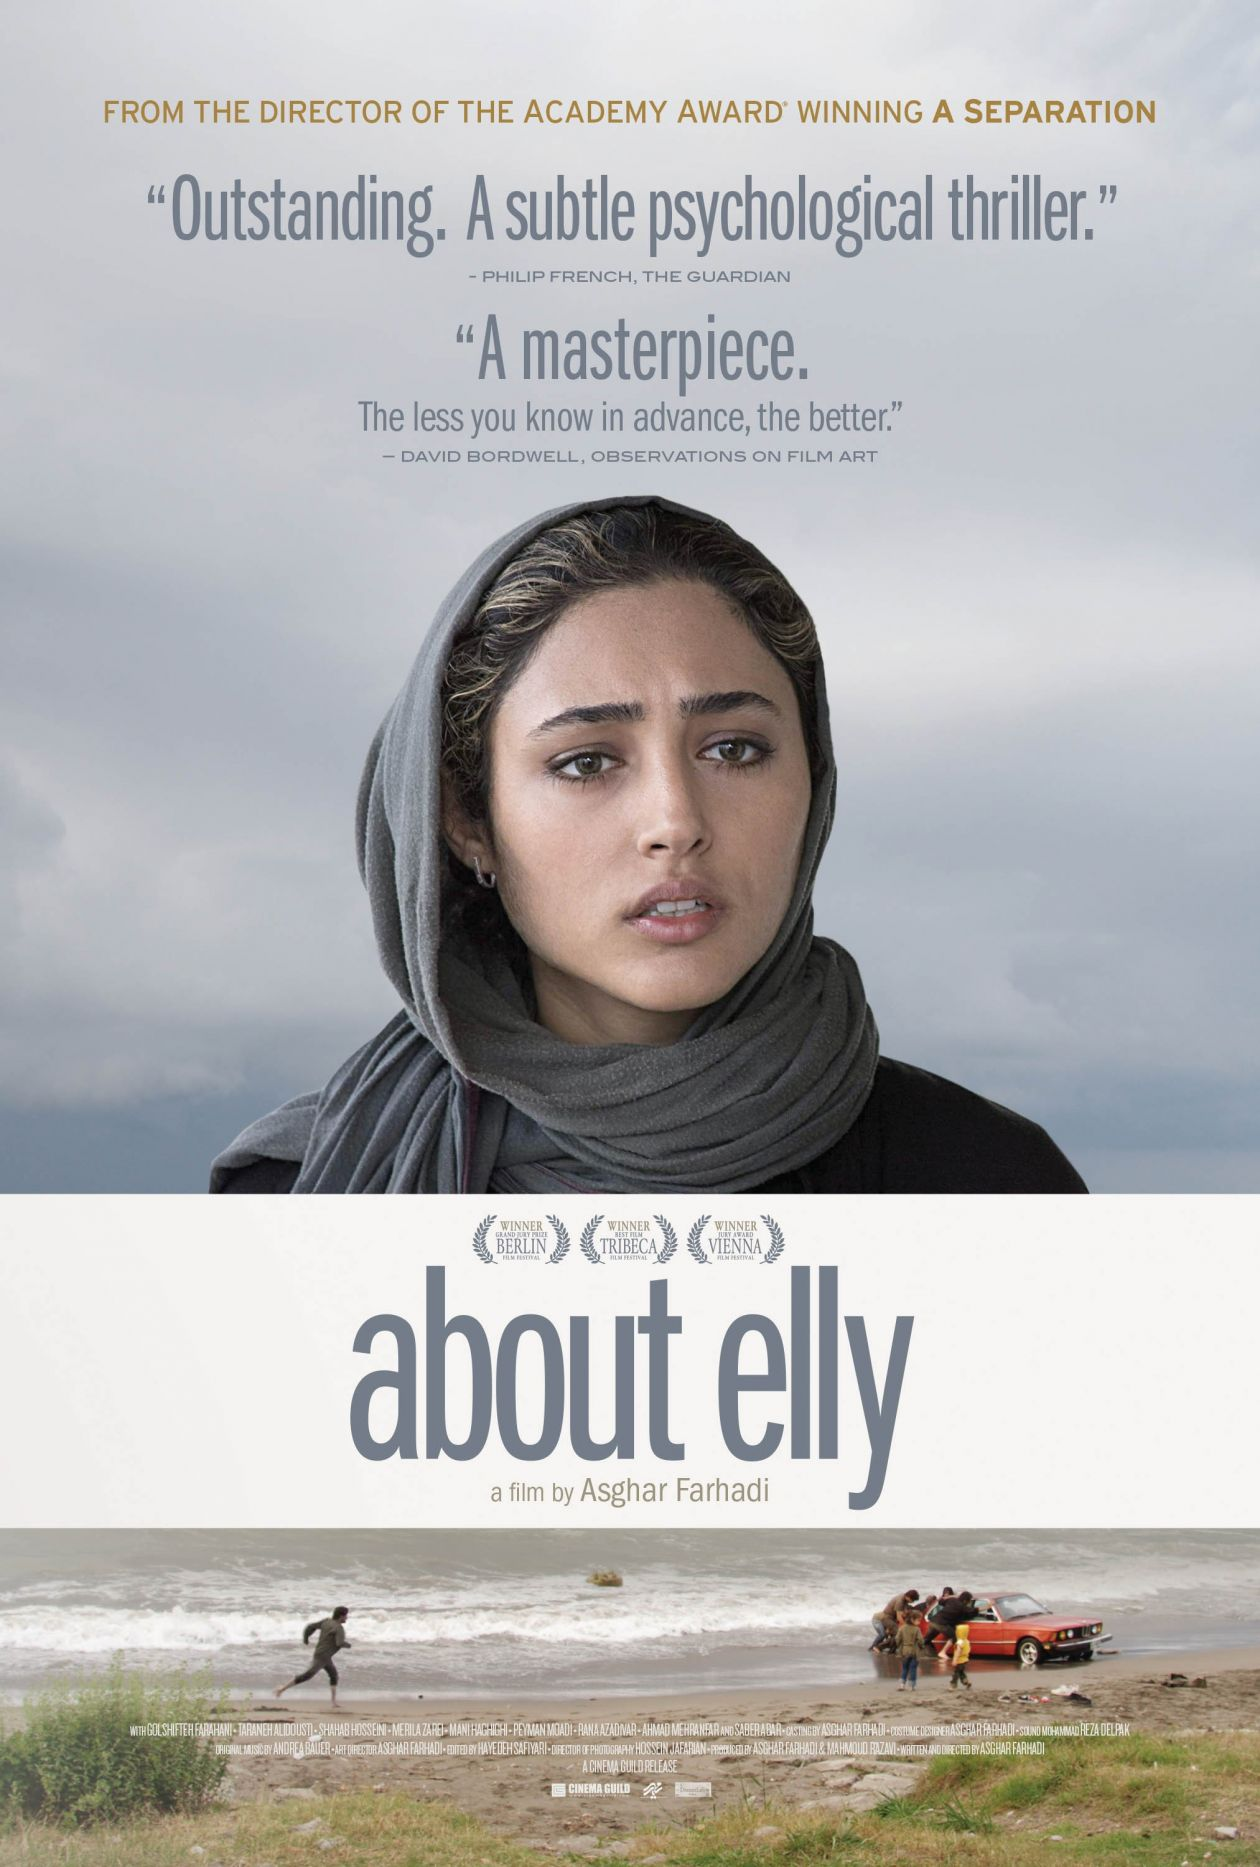 Golshifteh Farahani actress actrice comédienne | About Elly / Asghar Farhadi 2009 / Movie Poster Affiche film